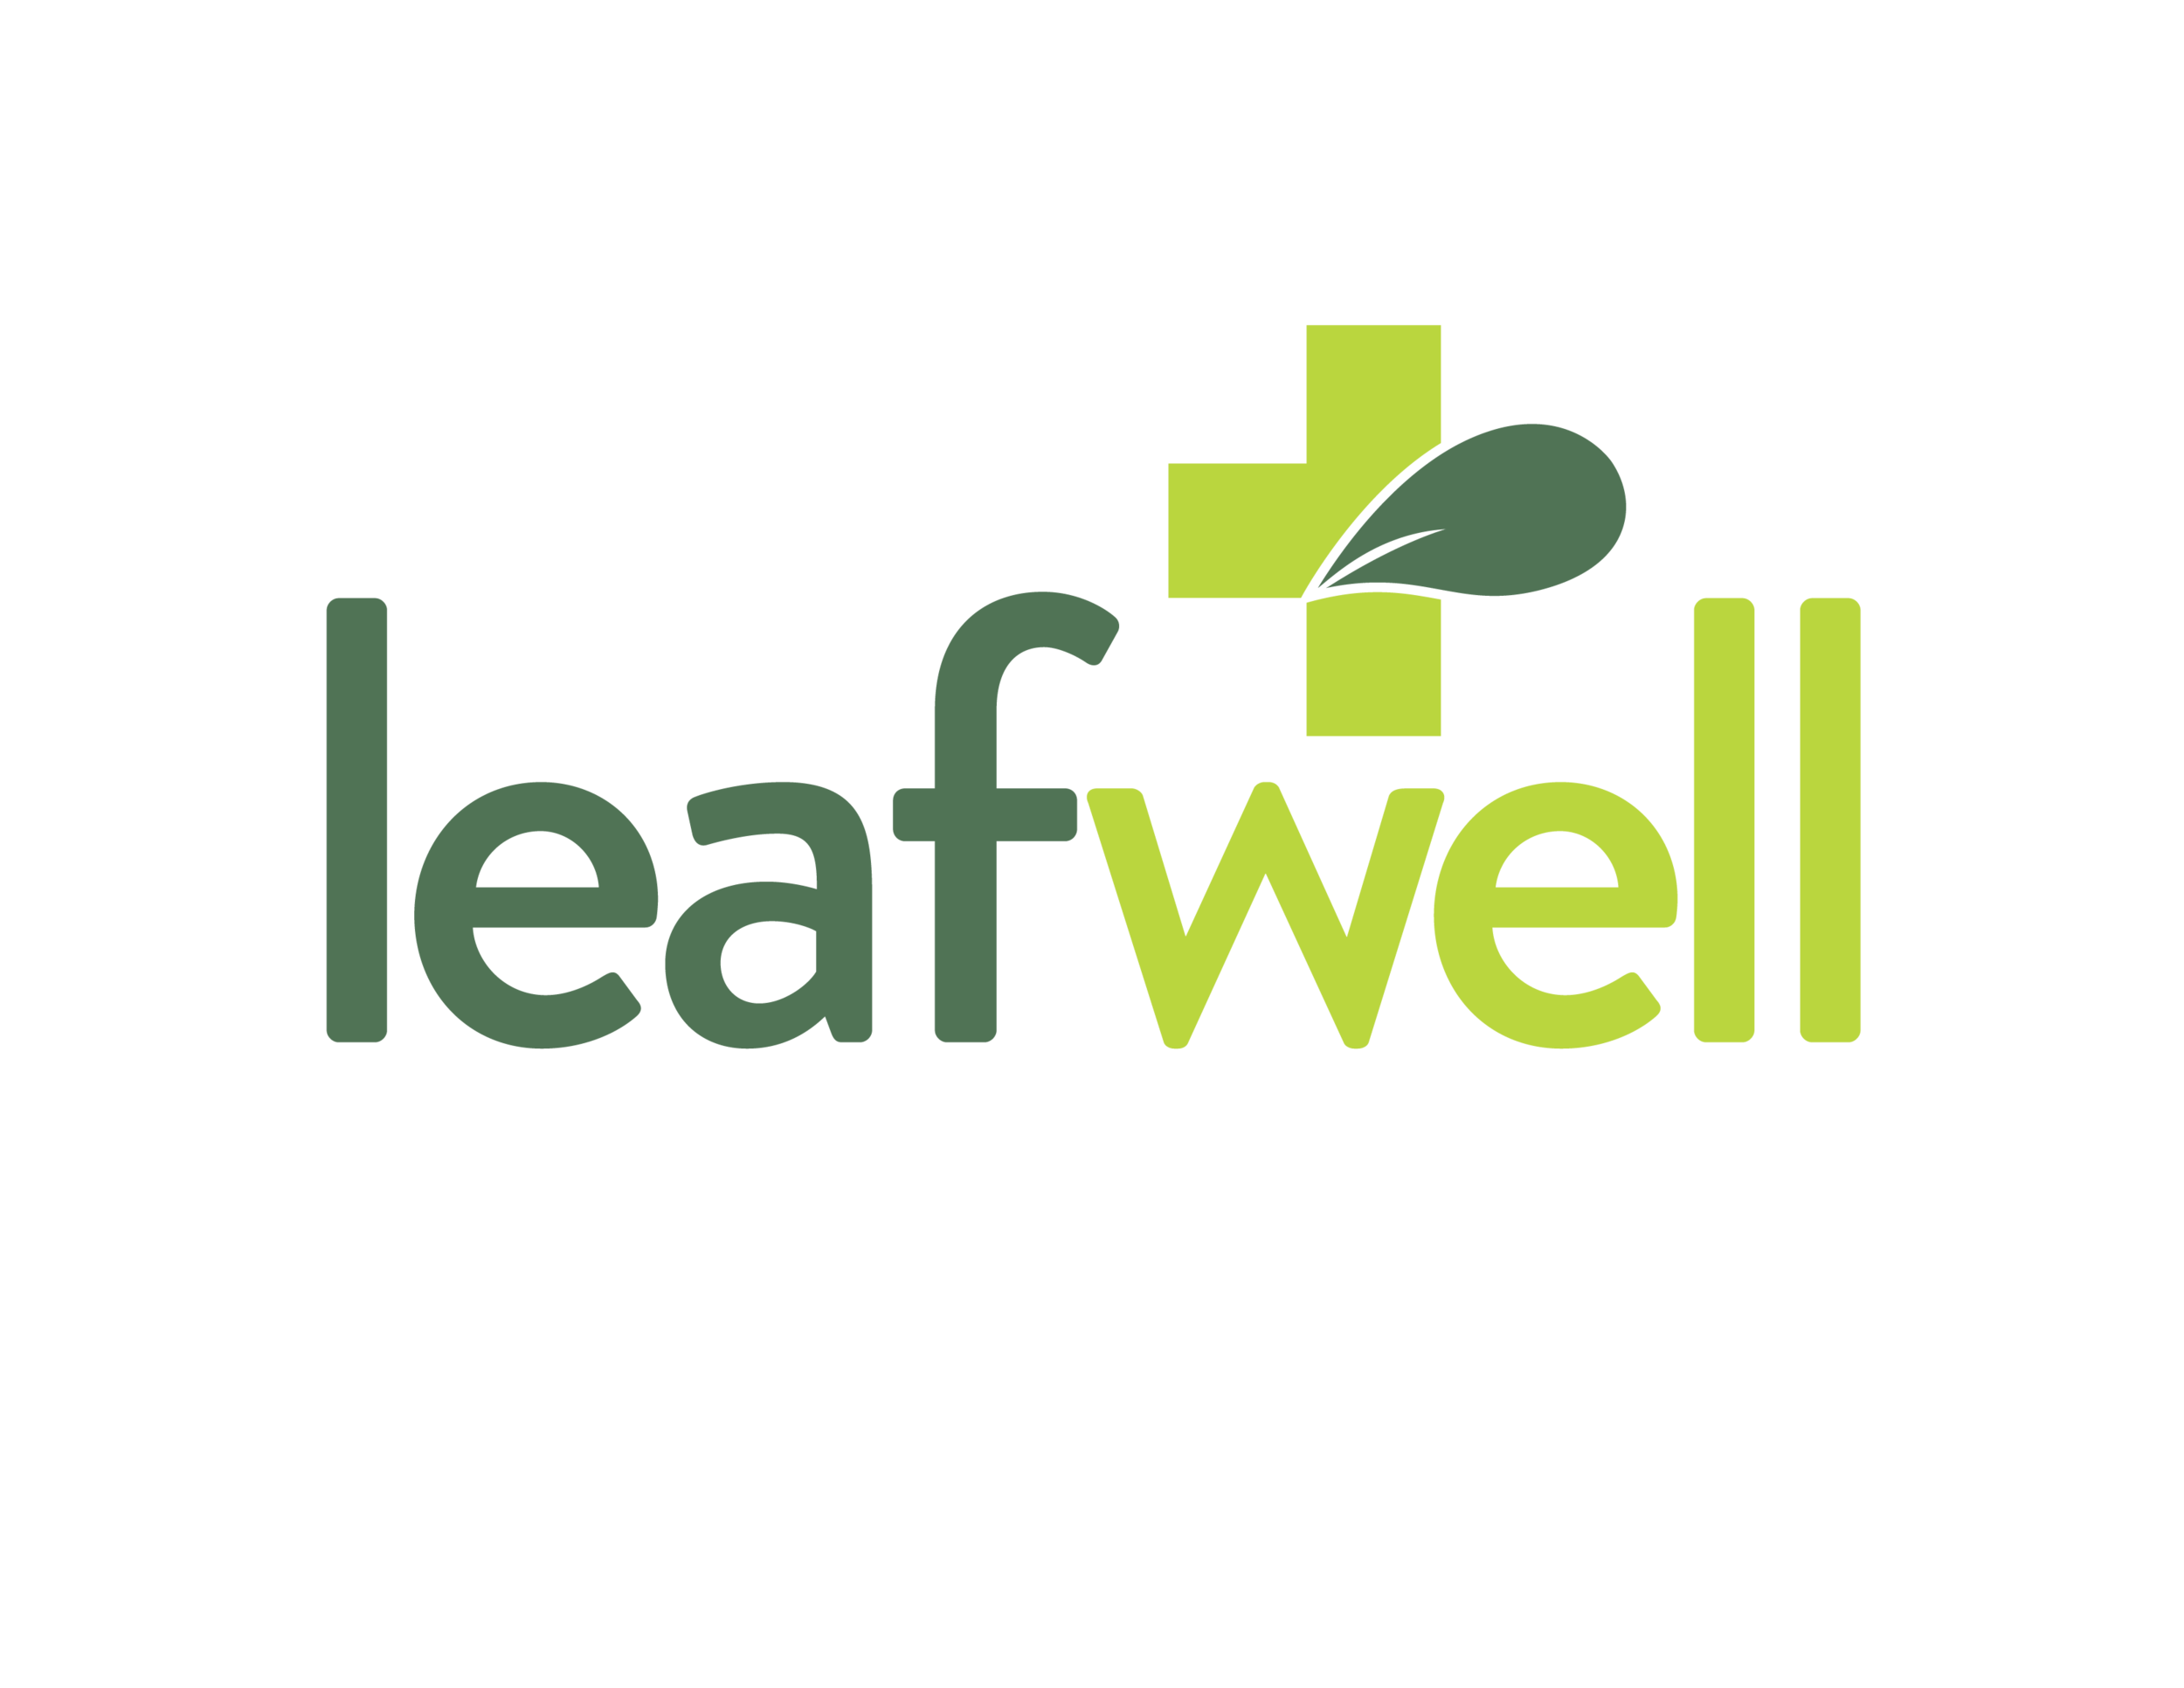 LeafWell